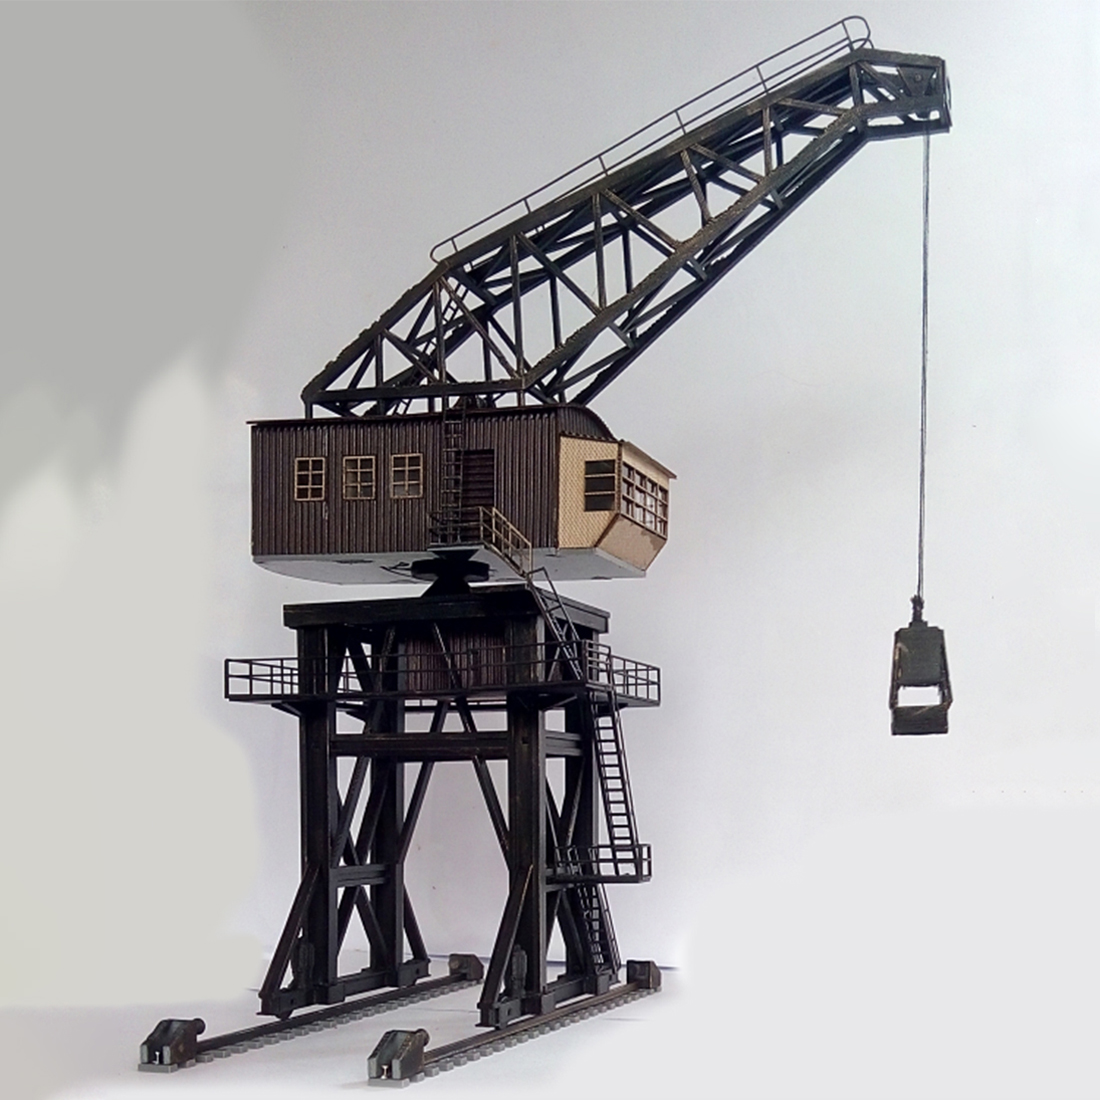 NFSTRIKE 1:87 HO Scale Train Railway Scene Decoration Large-Scale Coal Crane Model For Sand Table Accessories DIY Architectural